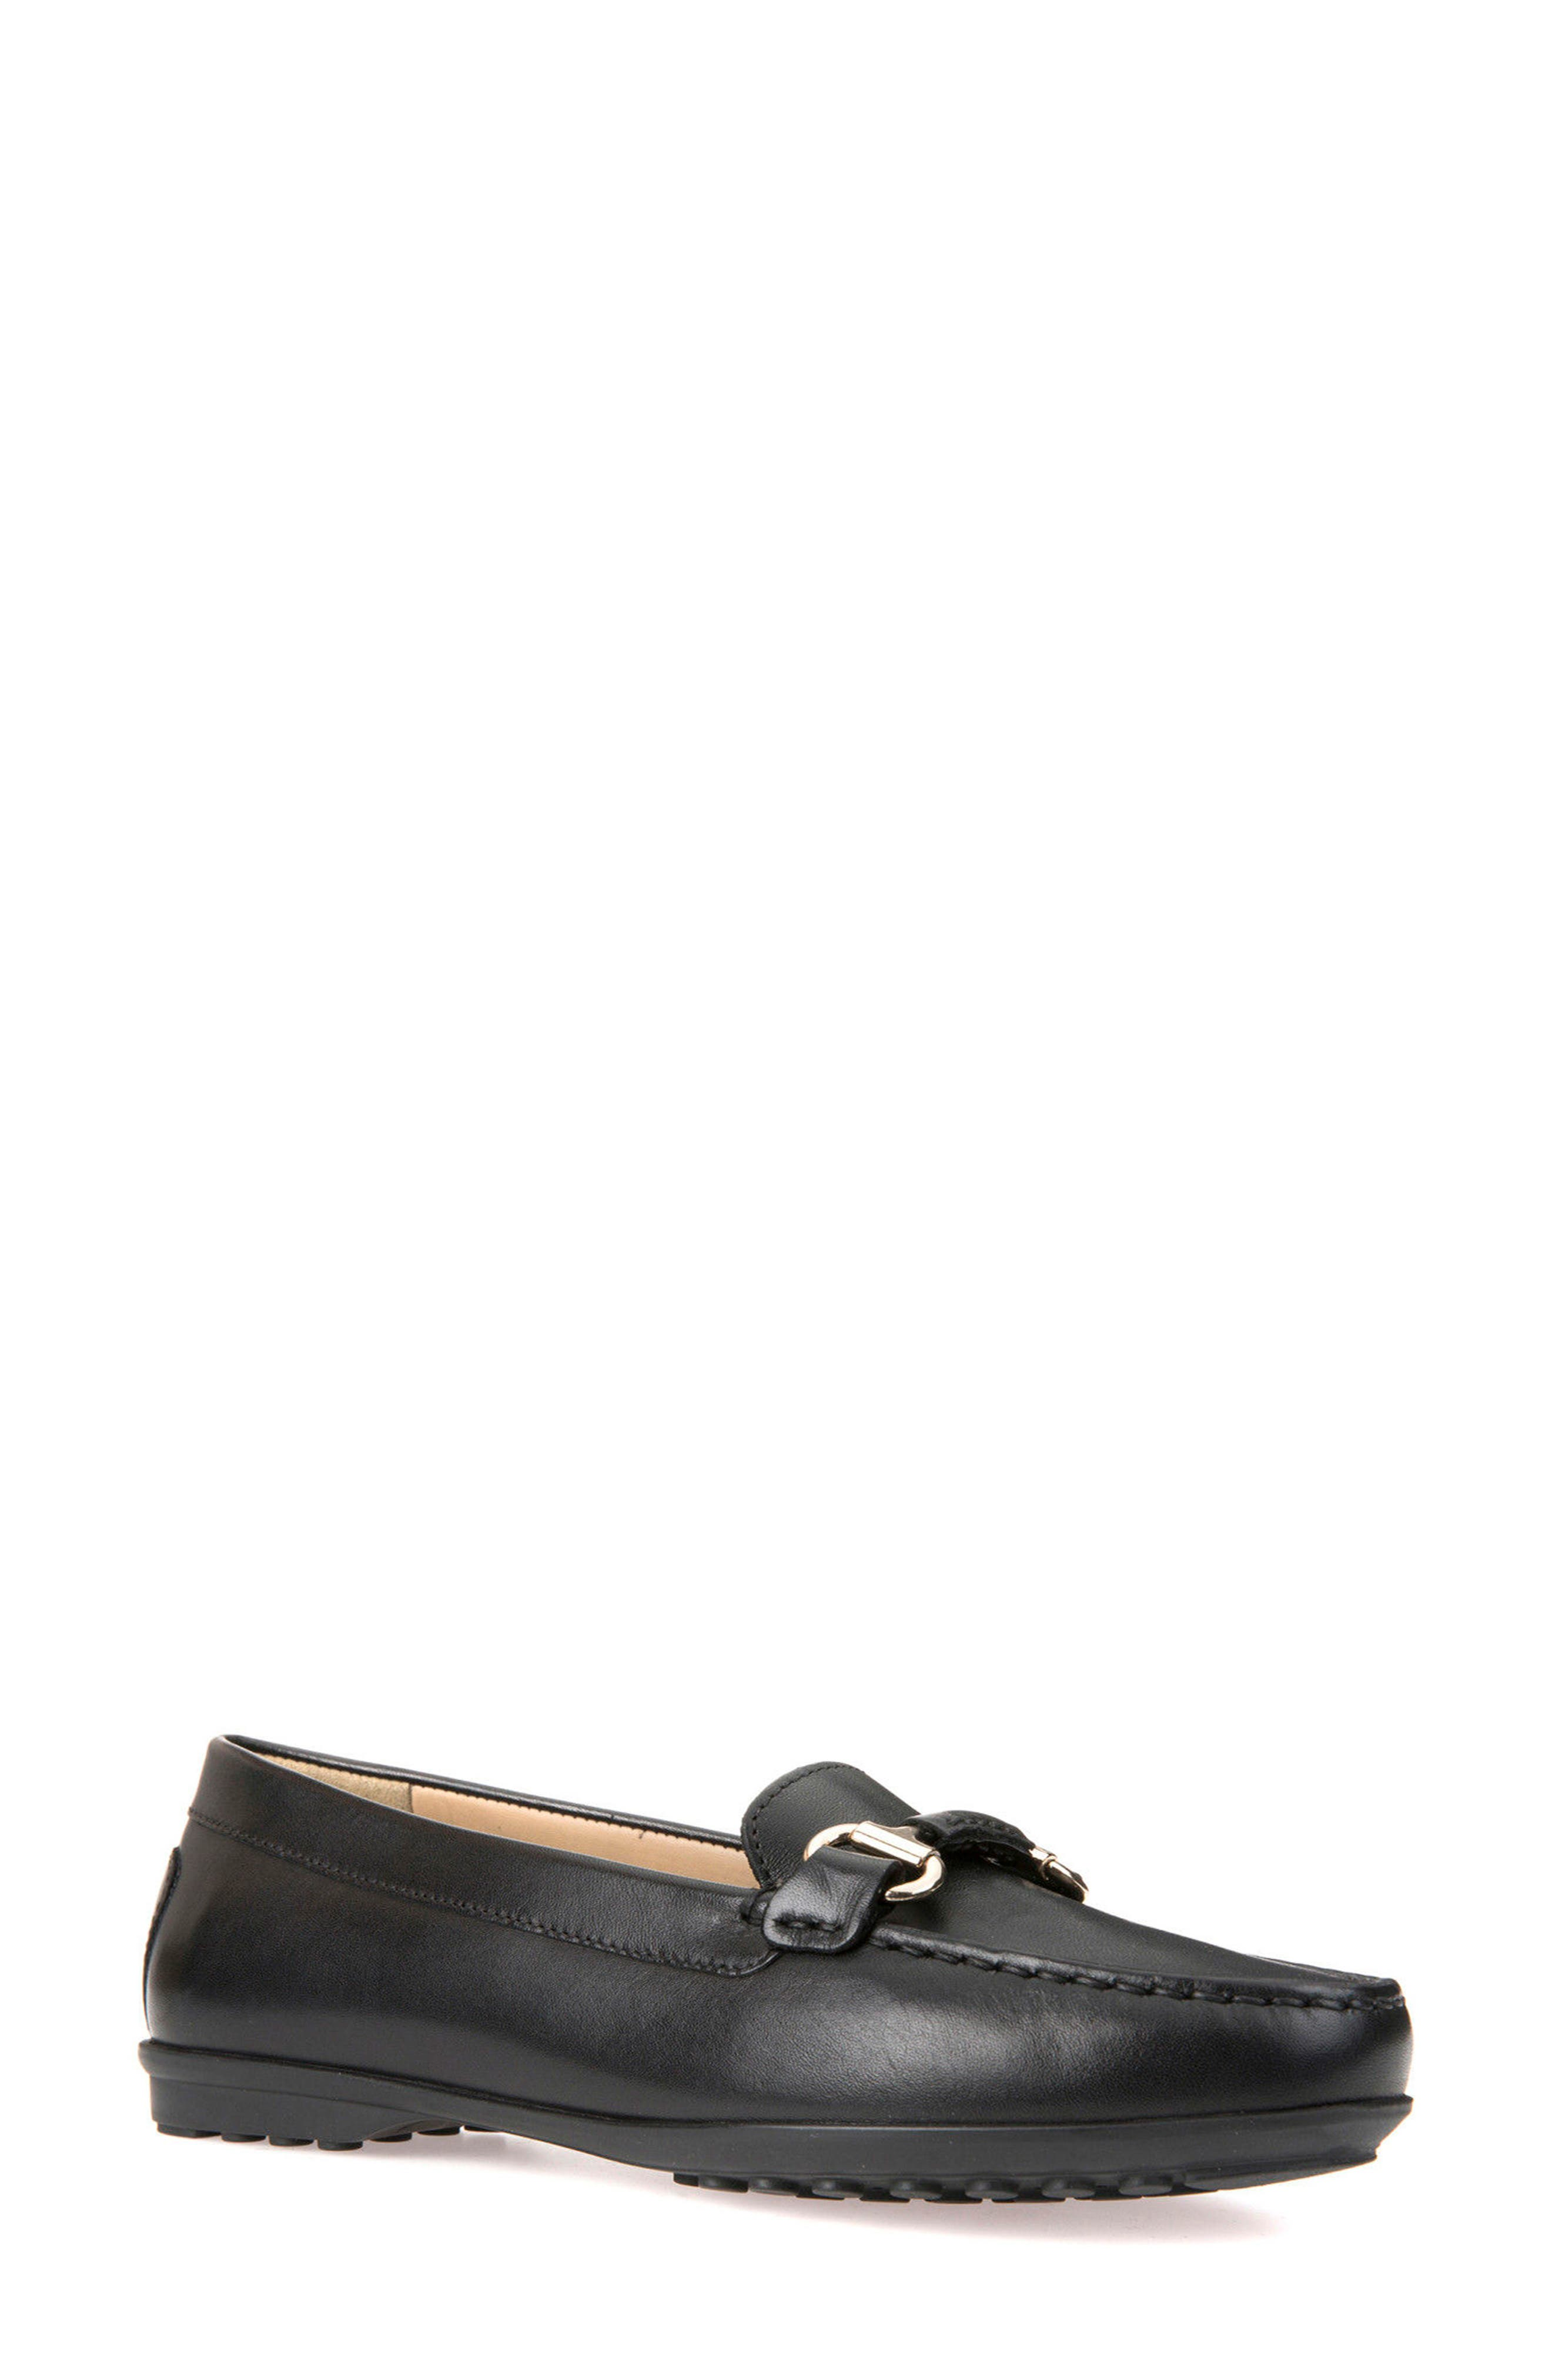 Main Image - Geox Elidia Buckle Loafer (Women)